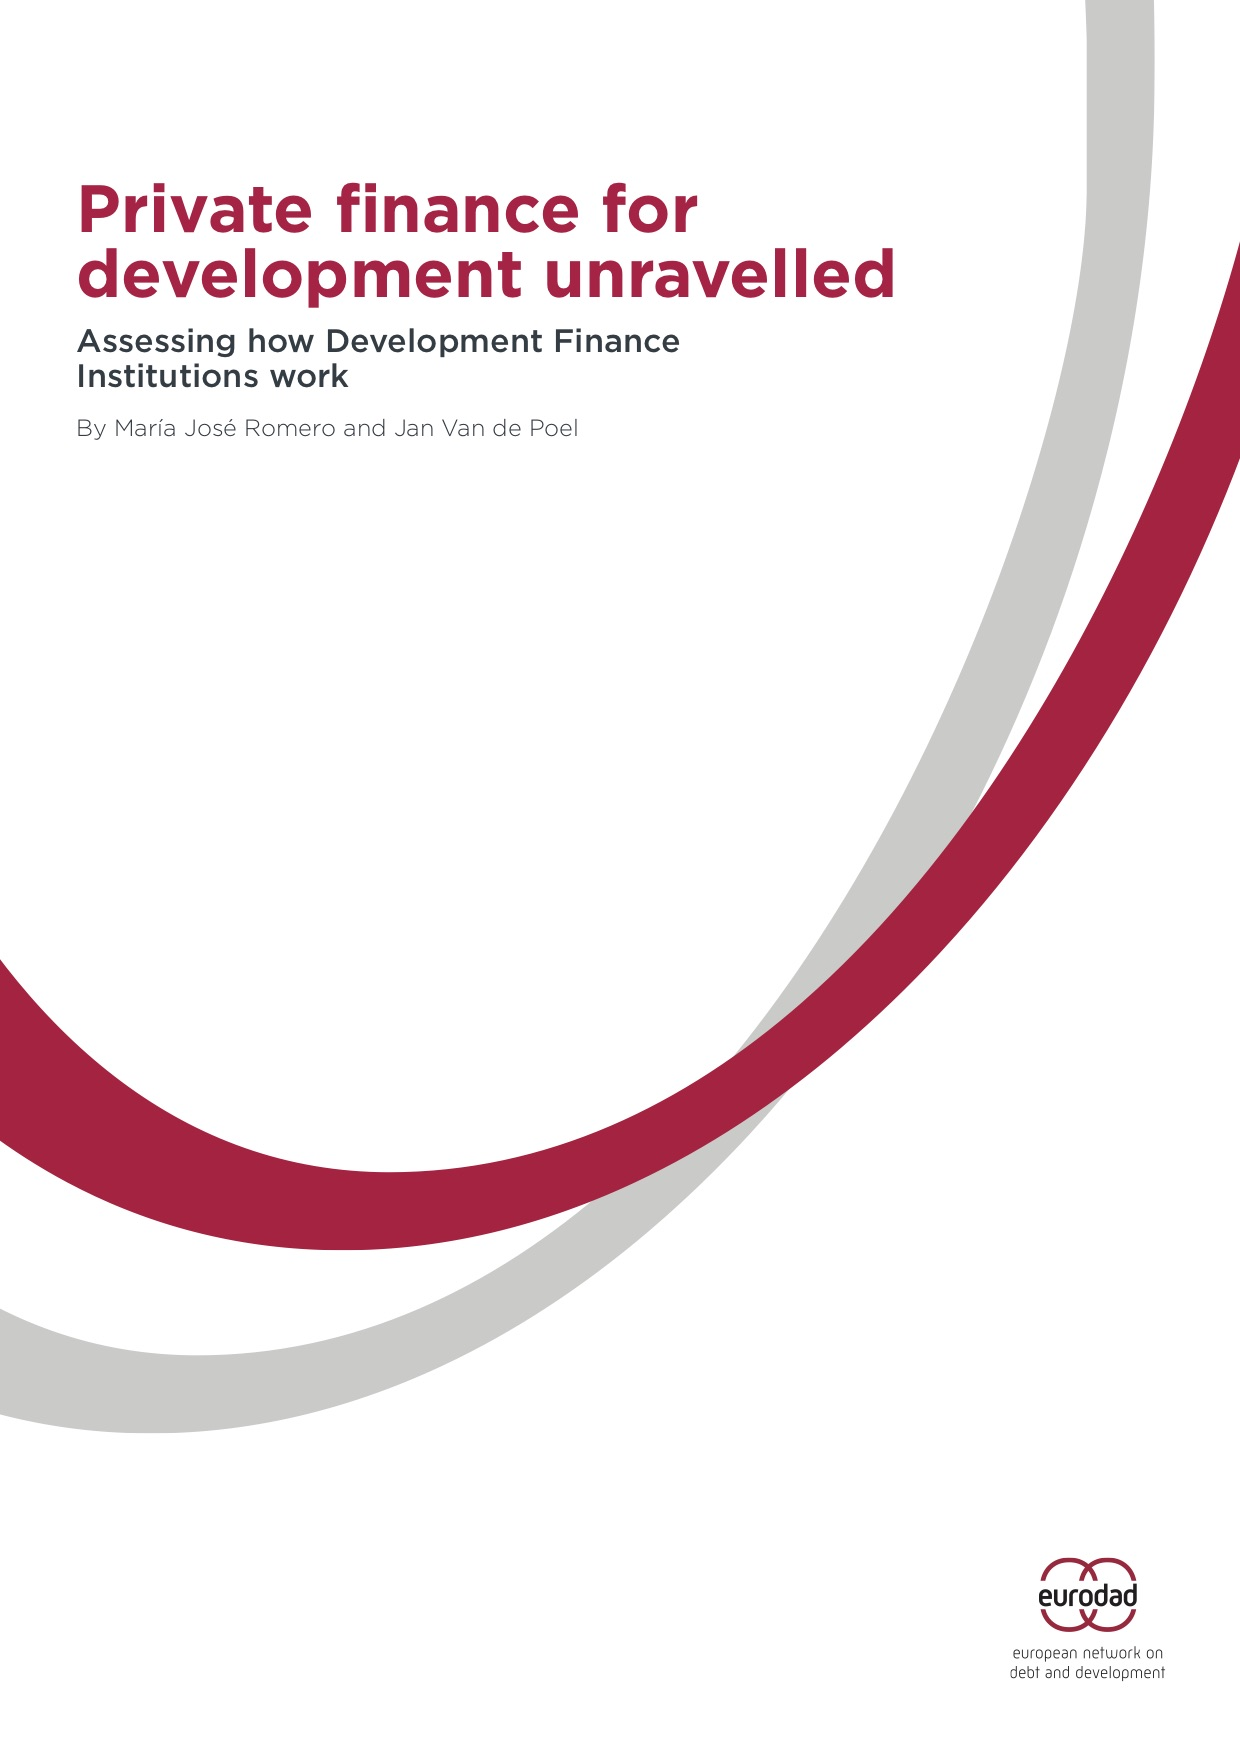 Private Finance for Development Unravelled: Assessing how Development Finance Institutions work